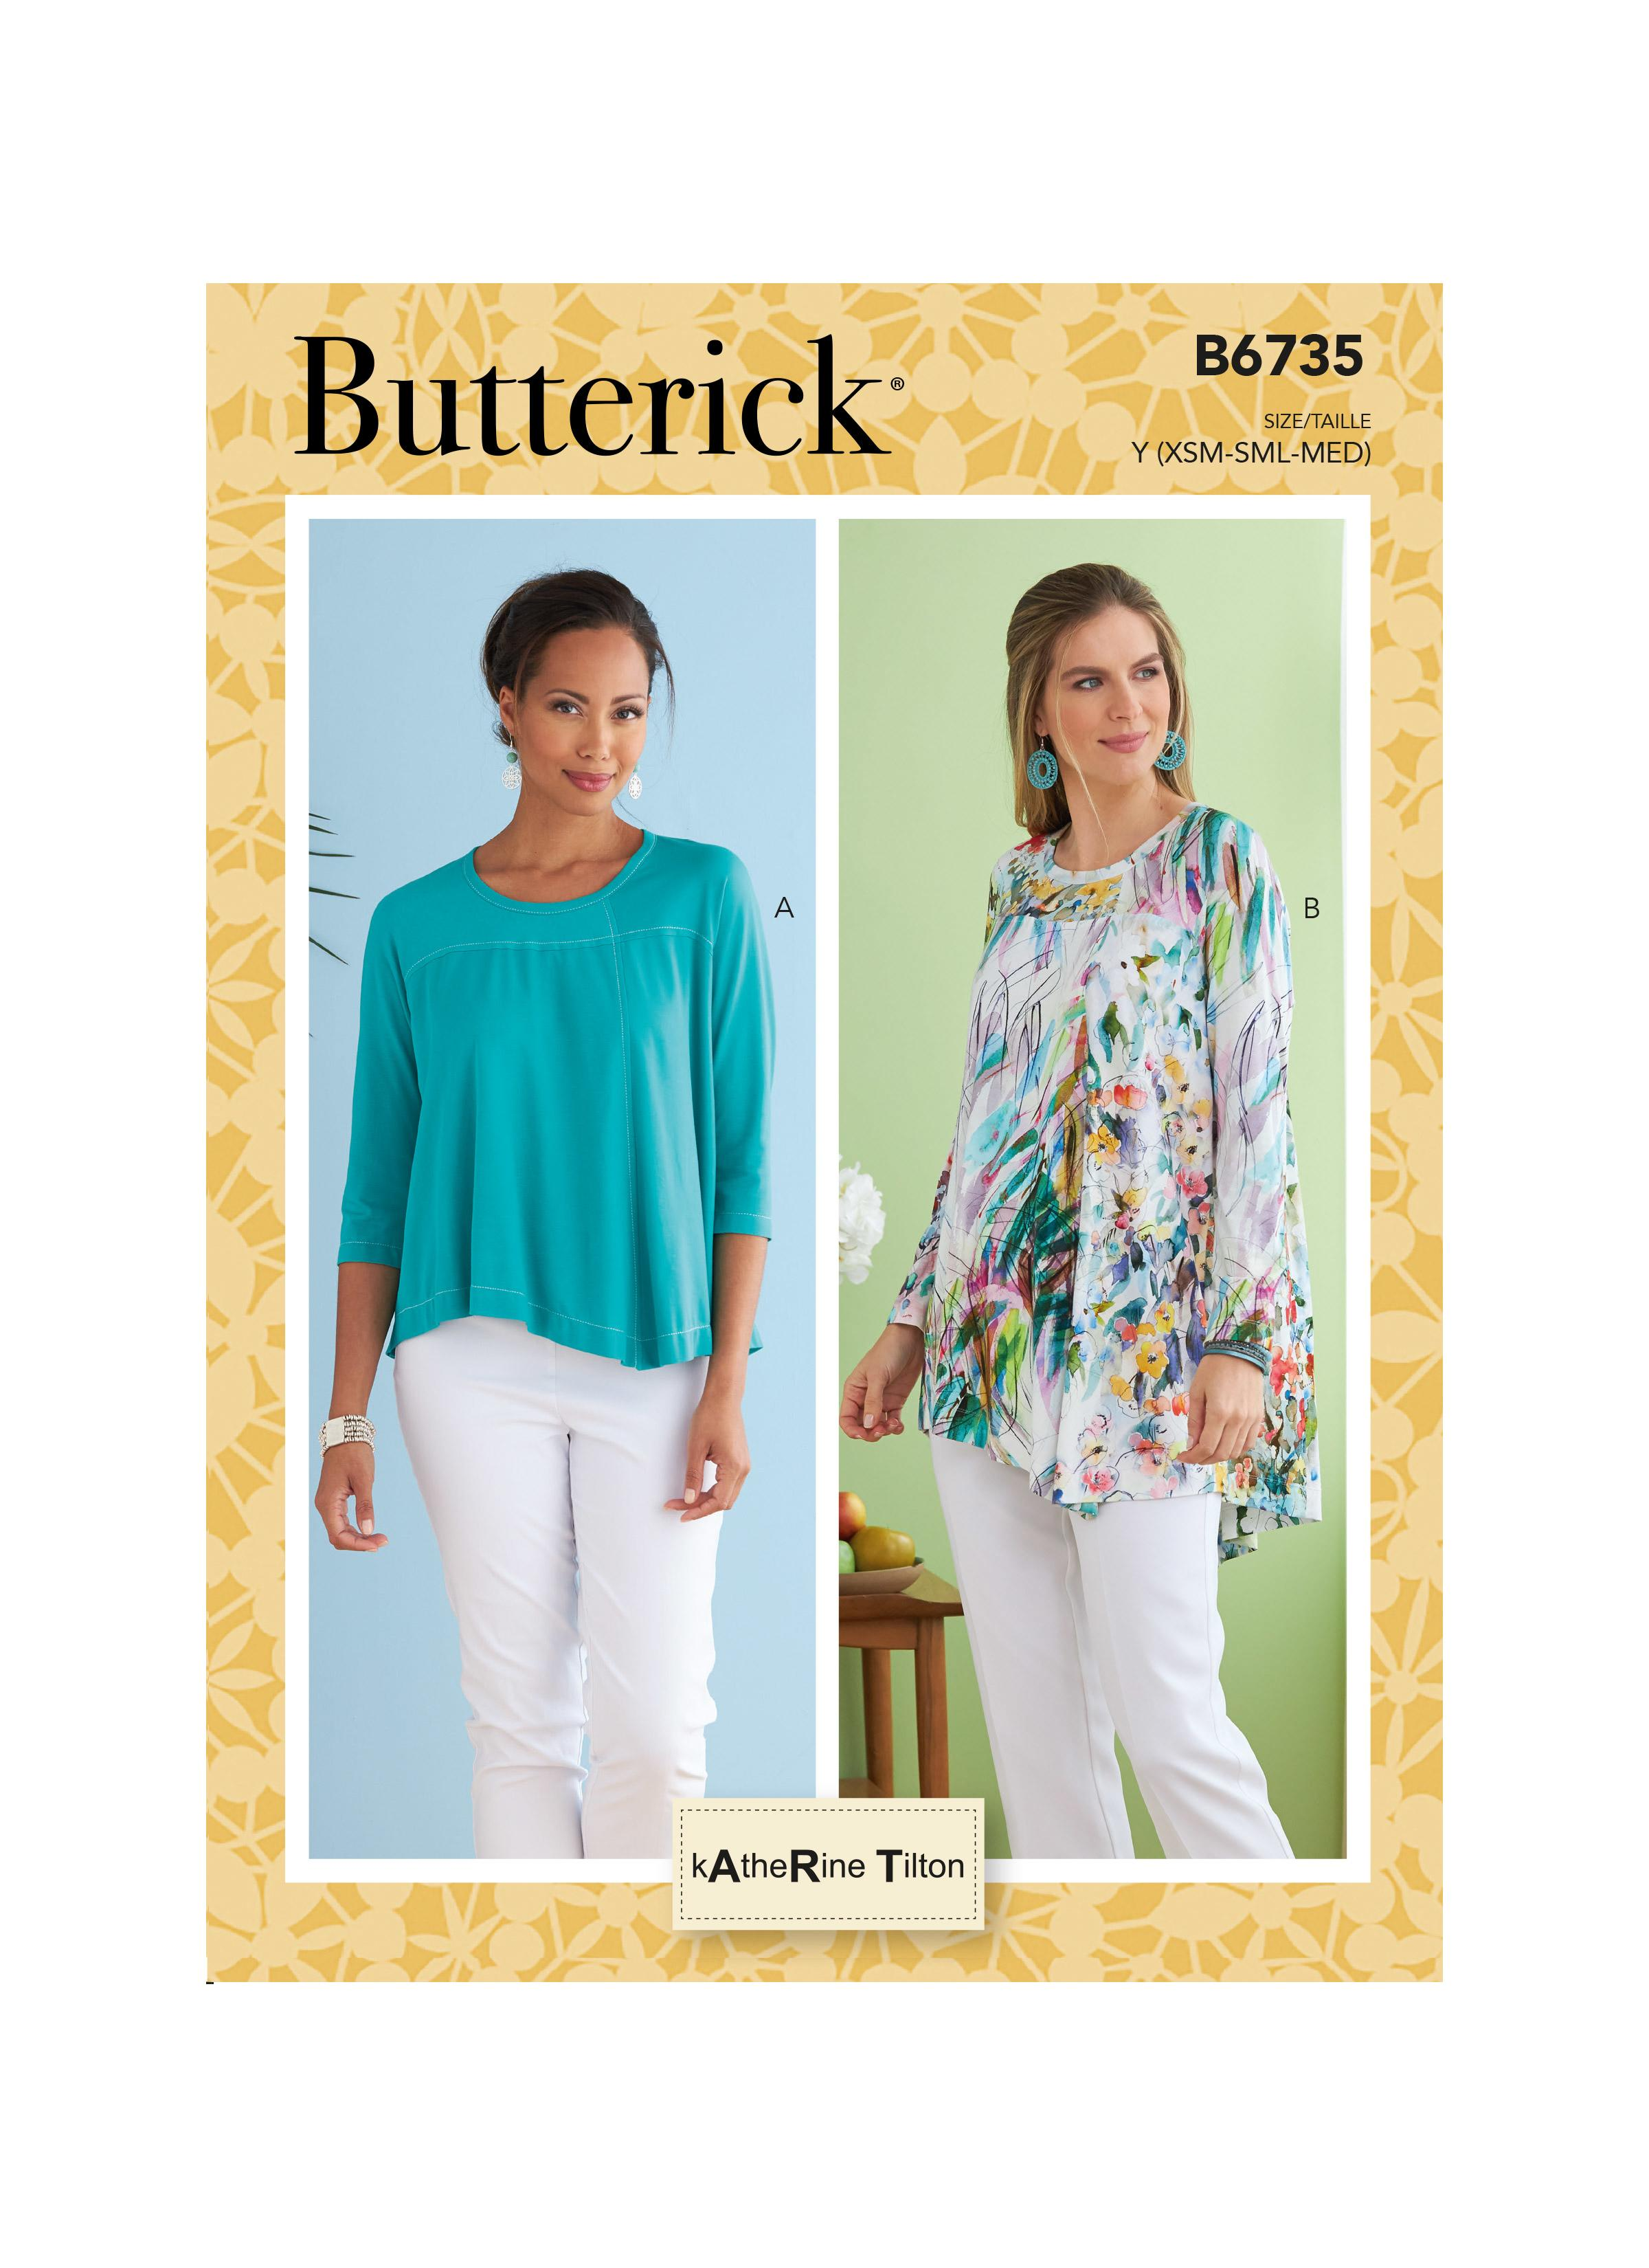 Butterick B6735 Misses' Top